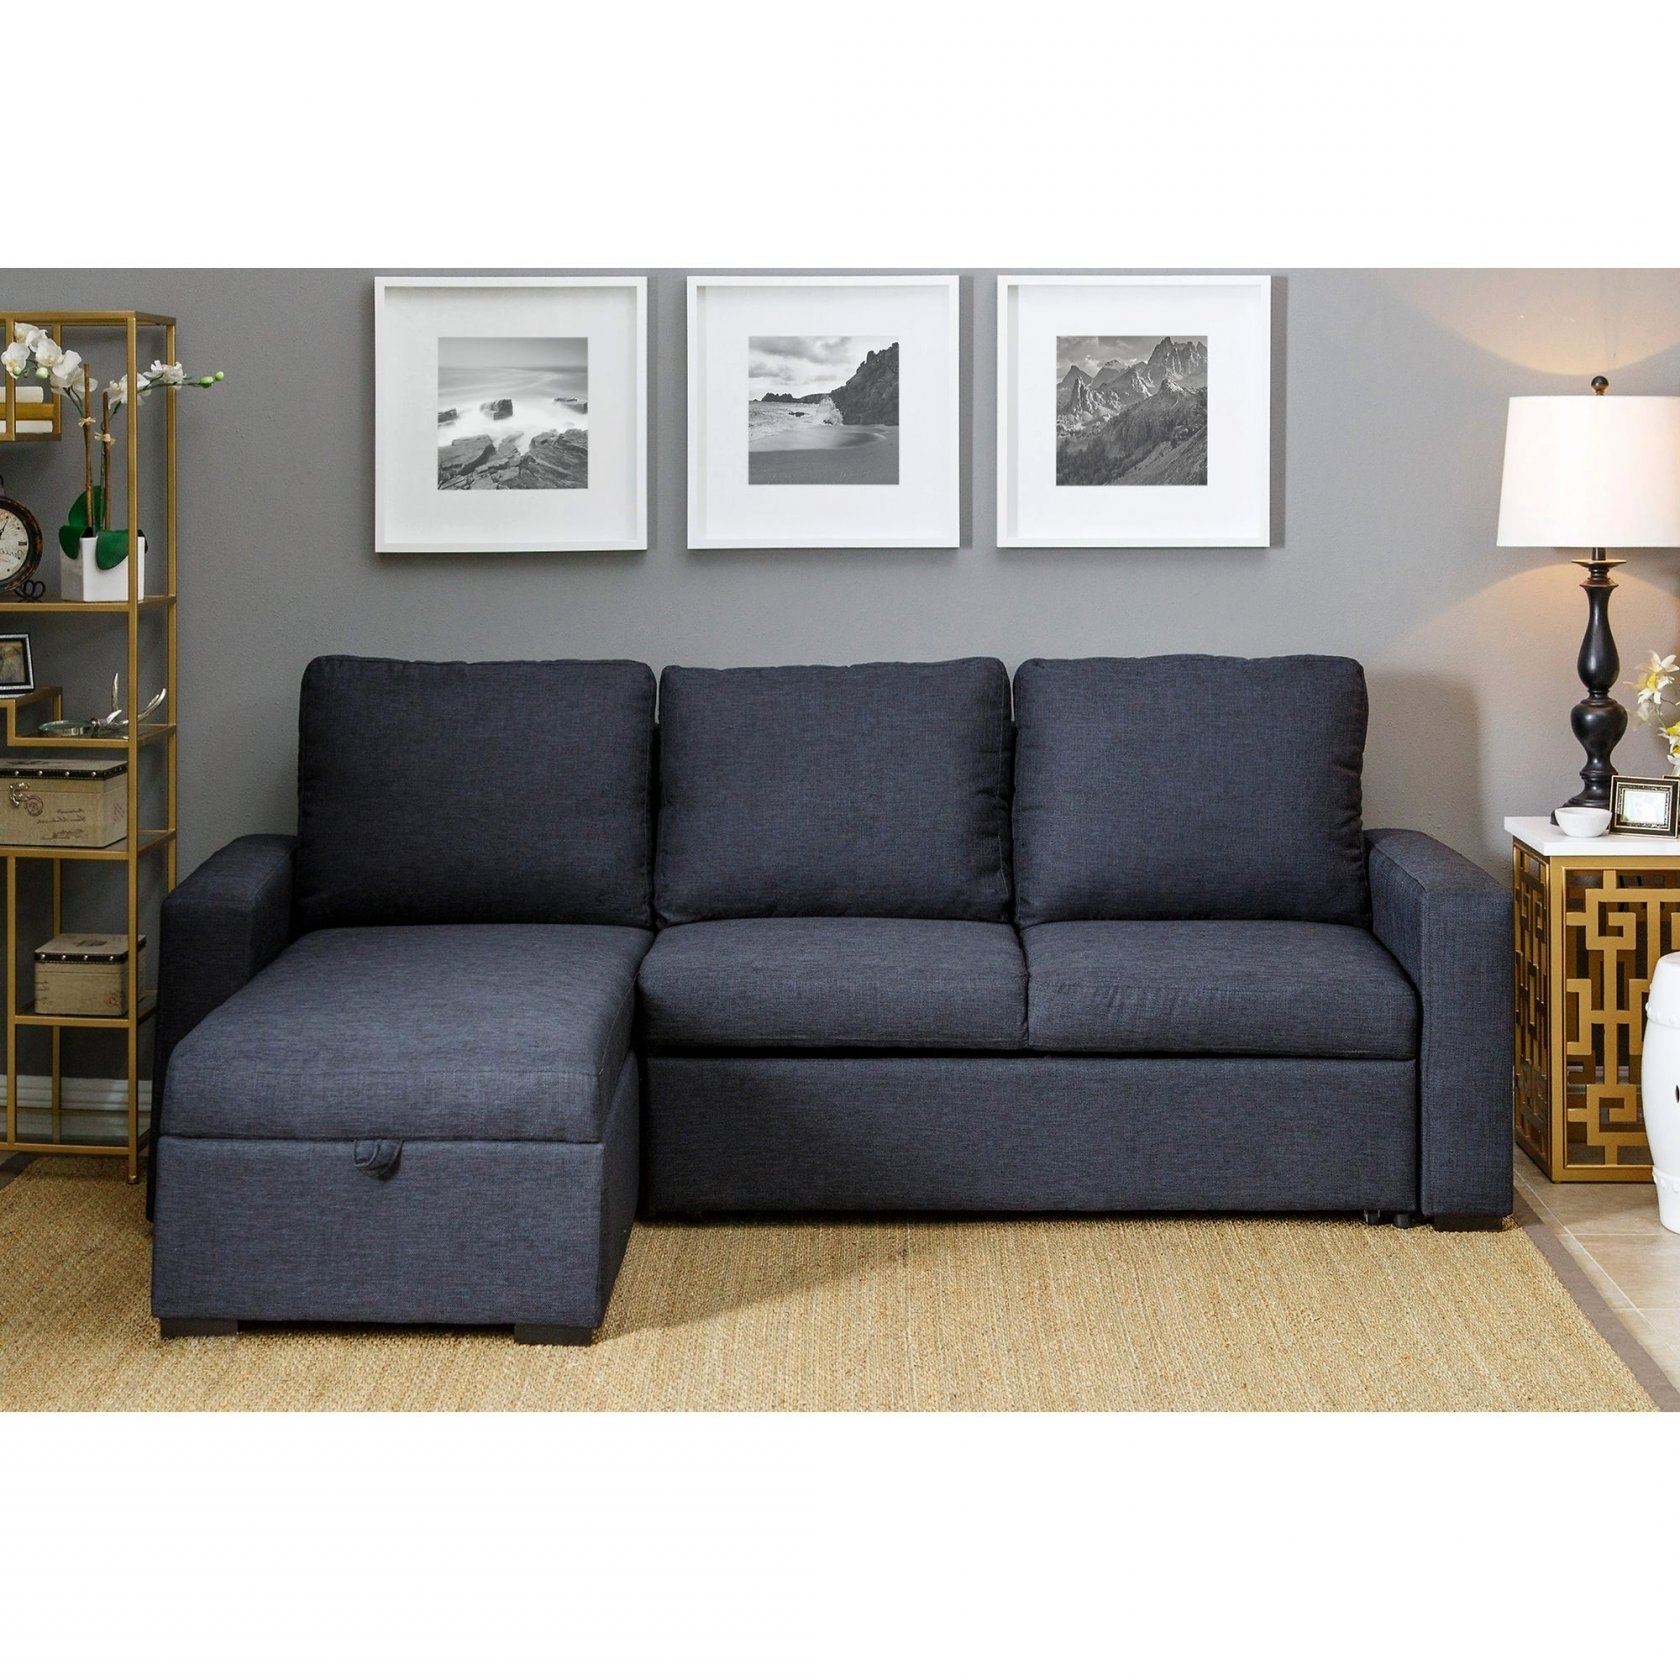 Charlotte Sectional Sofas Within Most Popular Abbyson Living Sectional Sofa #5 Excellent Abbyson Living (View 6 of 20)